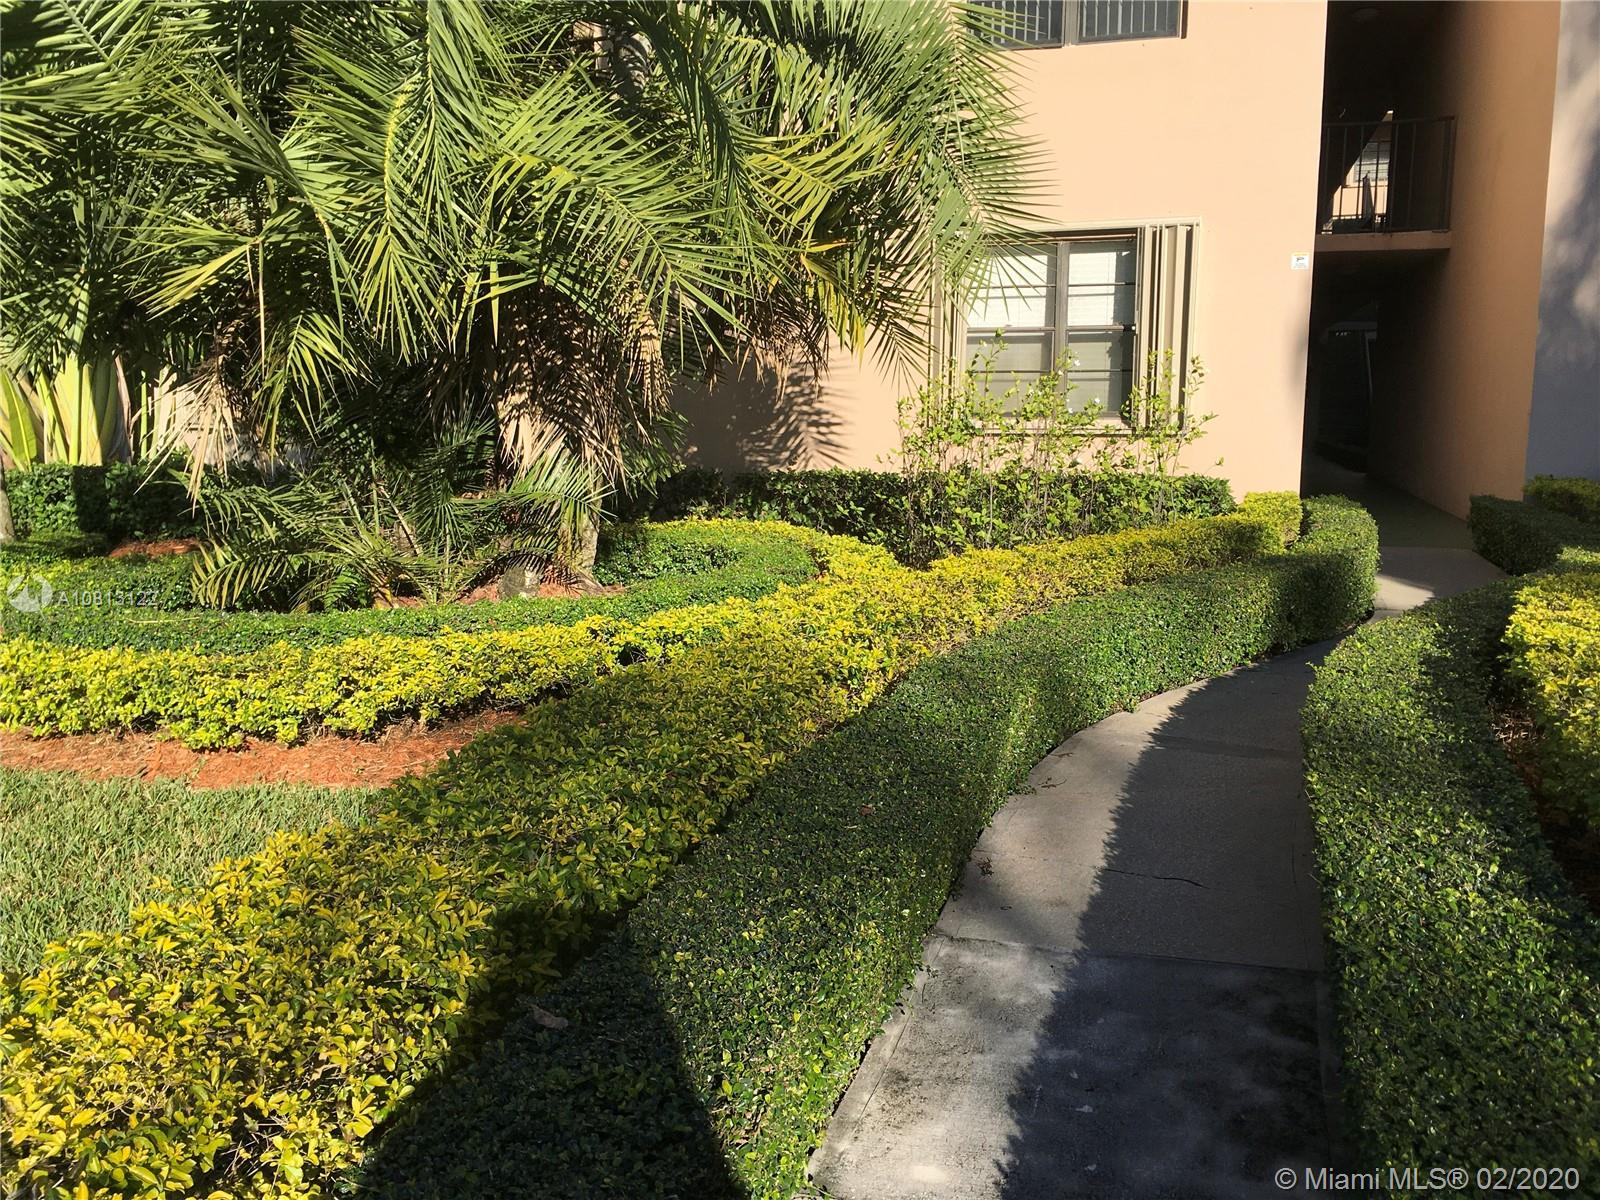 Nice first floor condo,  owner unit with access to parking lot, garden view, large terrace with storage, large bedrooms both with walking closets, all tiled floors, pets well On my way!, fast approval, tenant occupy but easy showings with notice. Perfect location with easy access to expressways, Miami Dade College across the street.